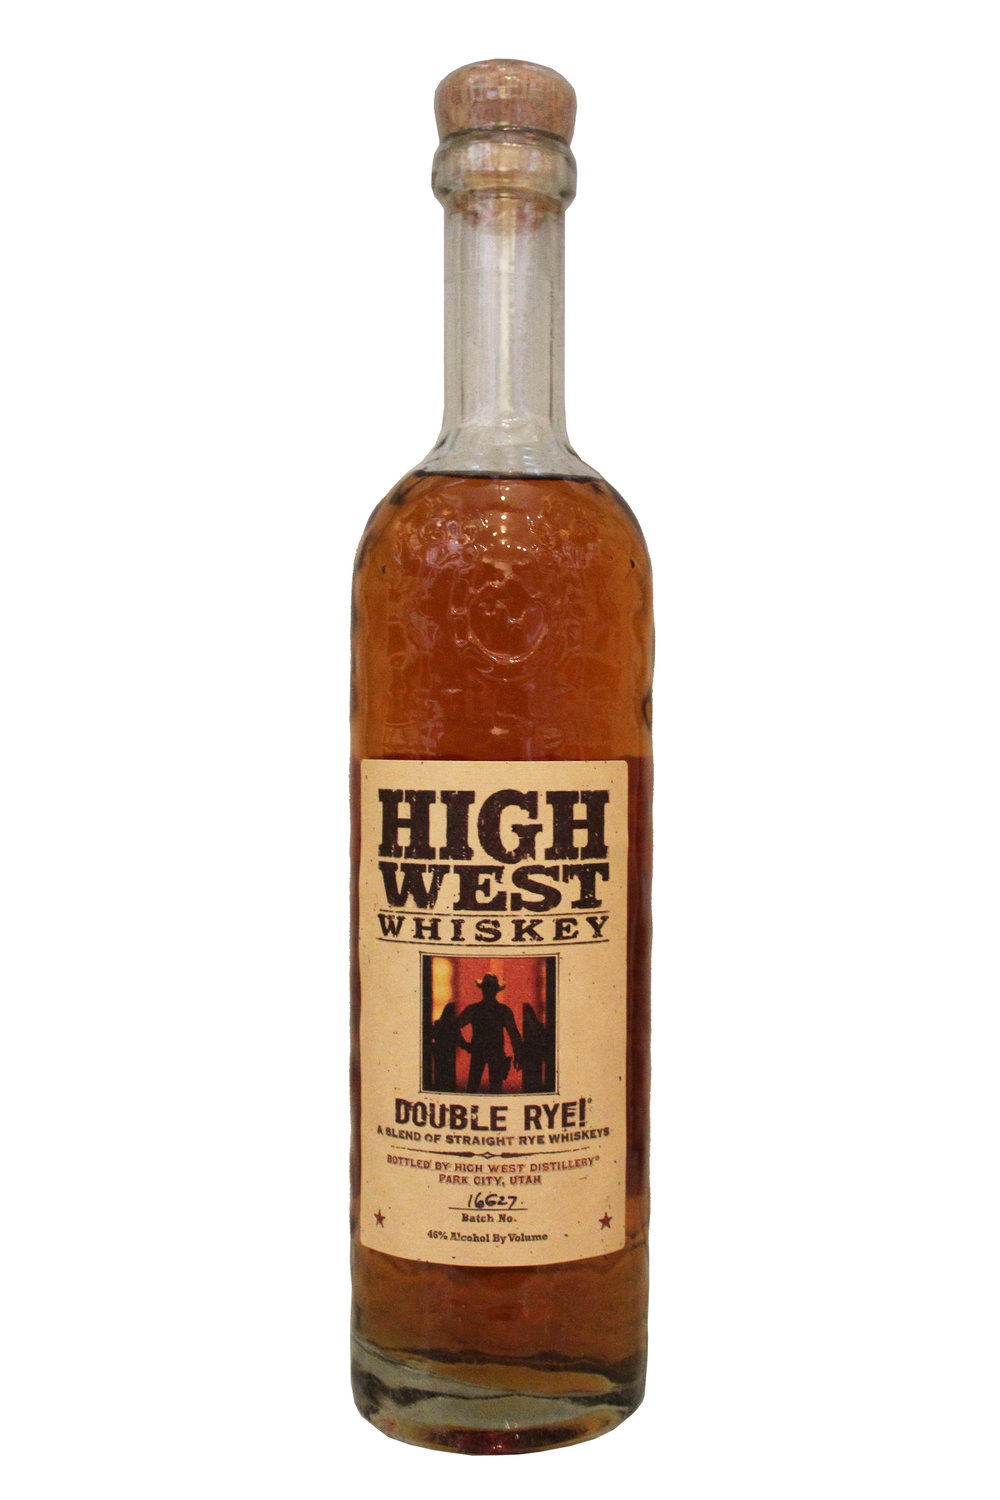 Double Rye Whiskey High West Whiskey, Utah